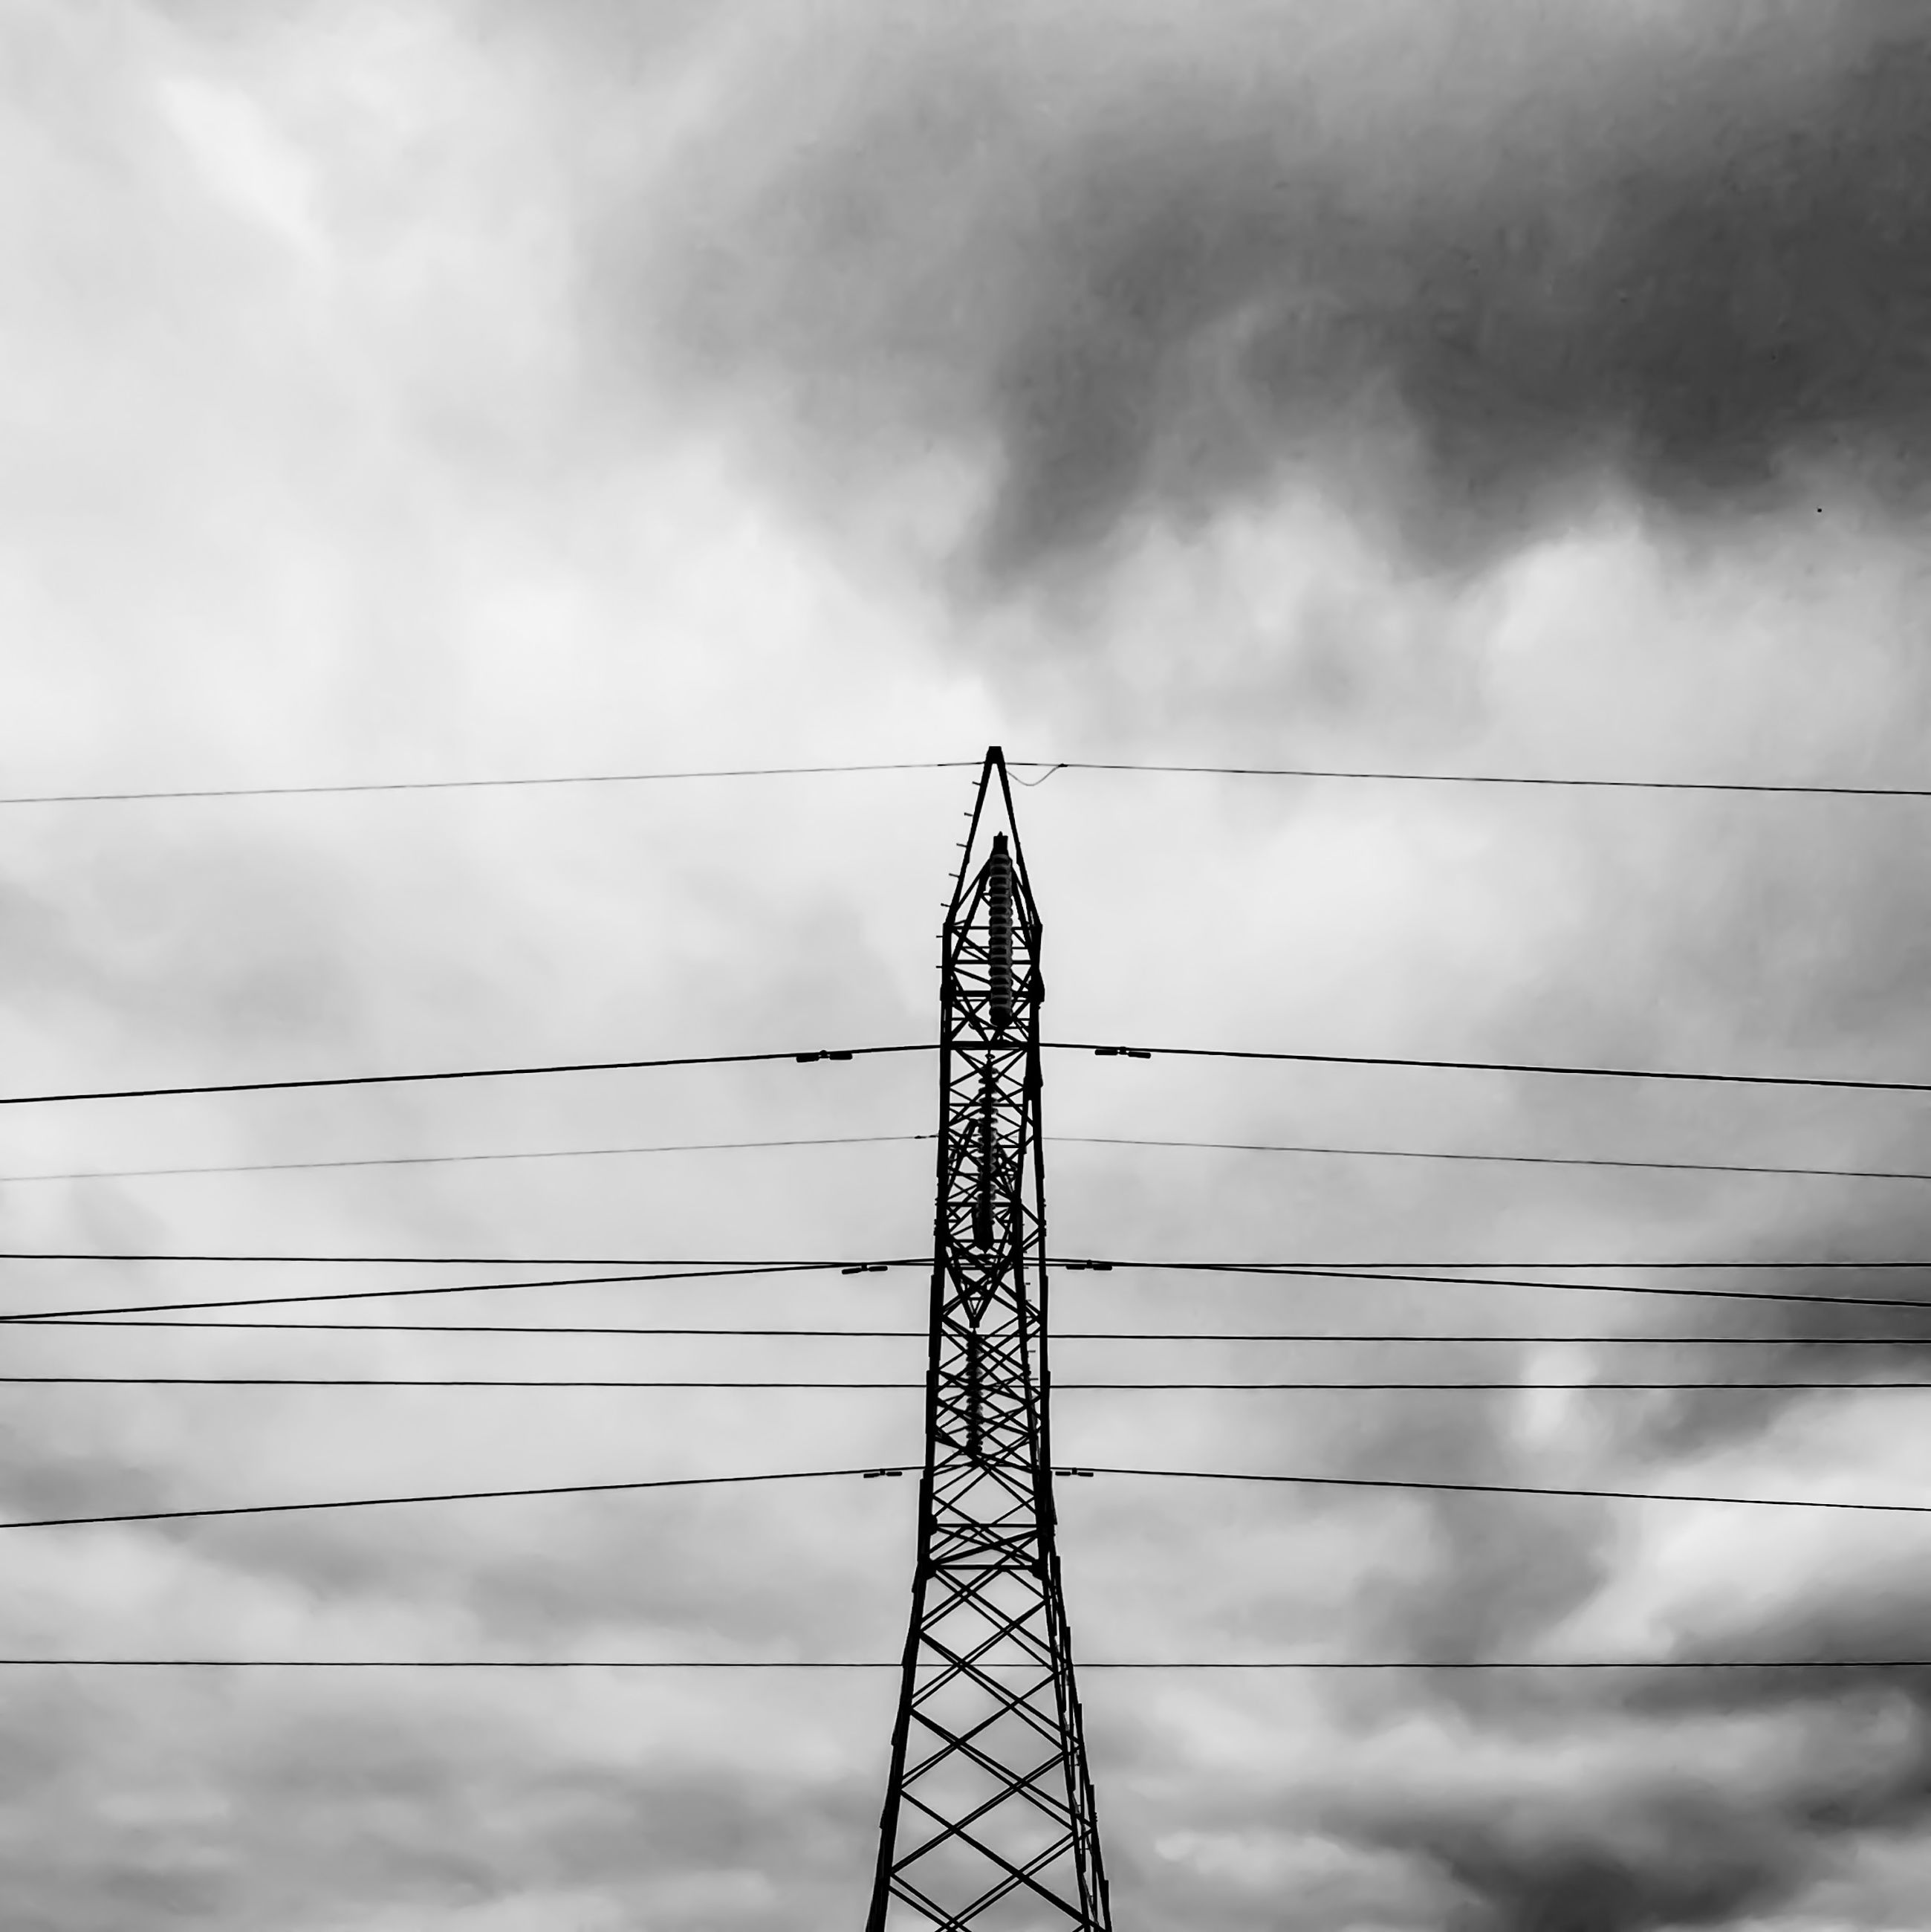 low angle view, sky, cloud - sky, cloudy, electricity pylon, connection, power supply, technology, power line, electricity, fuel and power generation, built structure, metal, tall - high, cloud, architecture, cable, development, construction site, silhouette